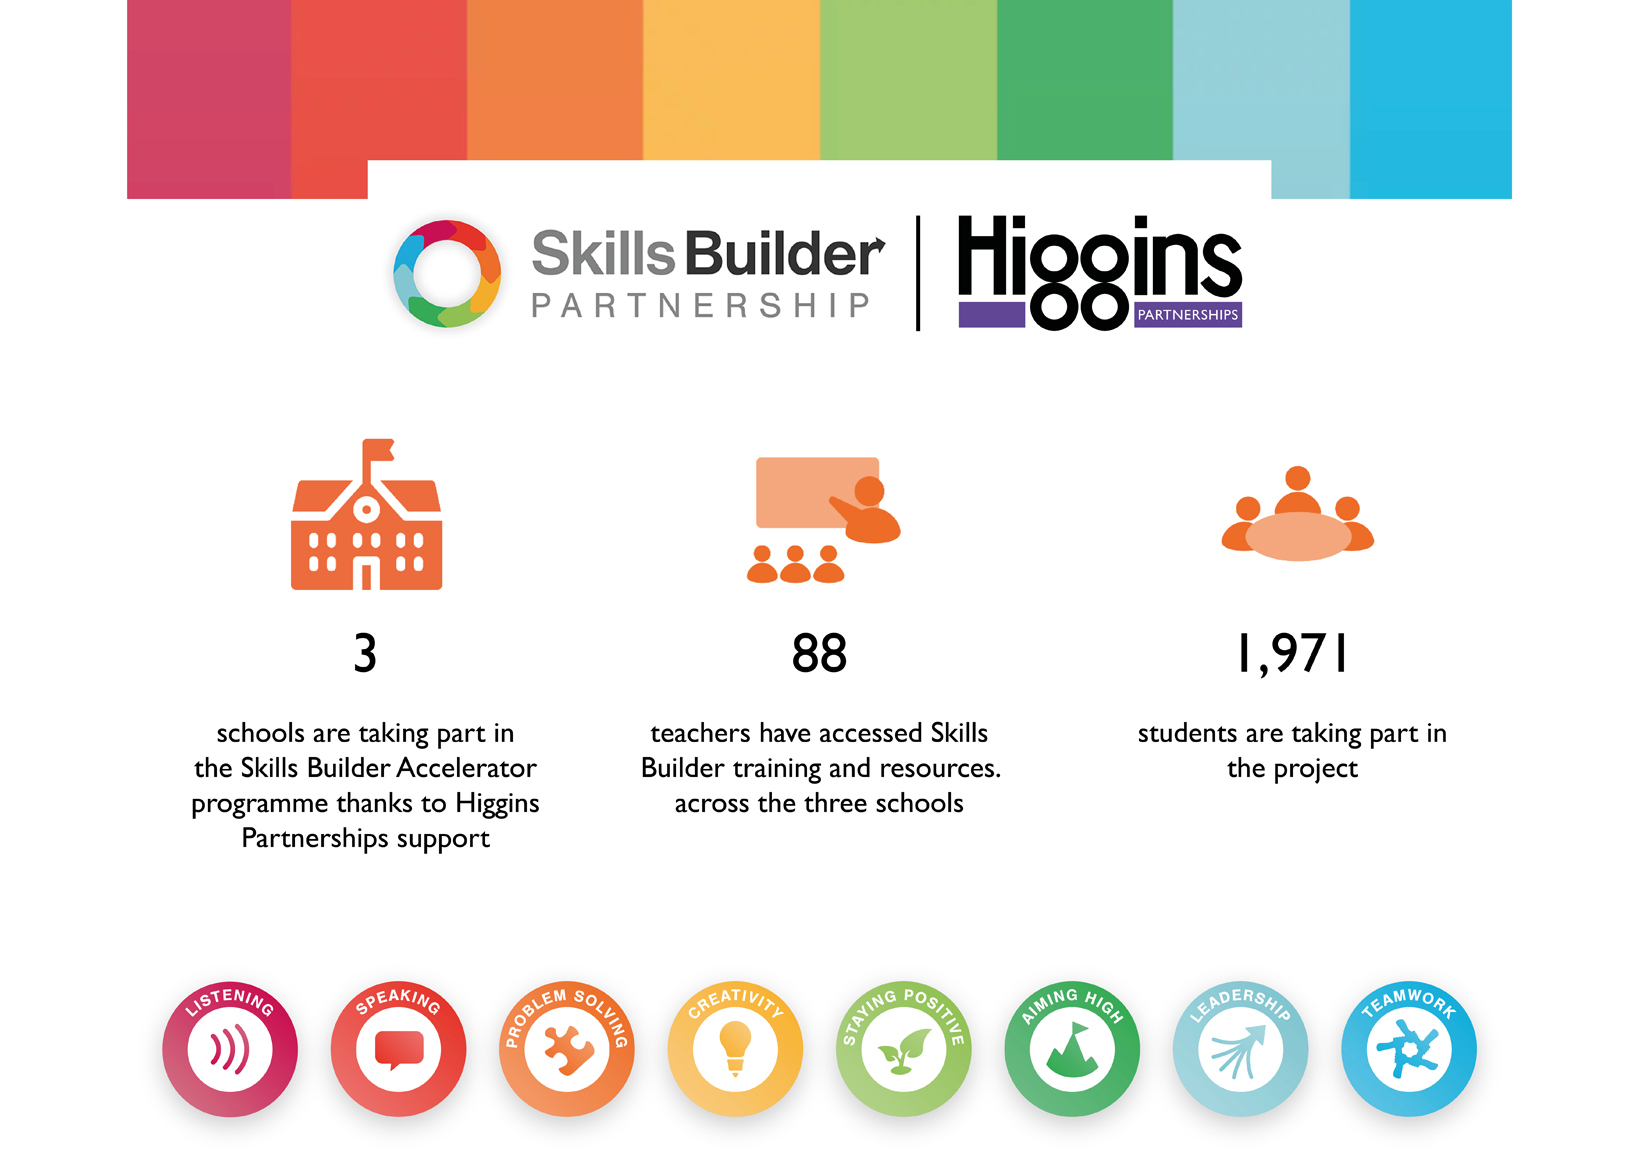 Building the essential skills to succeed